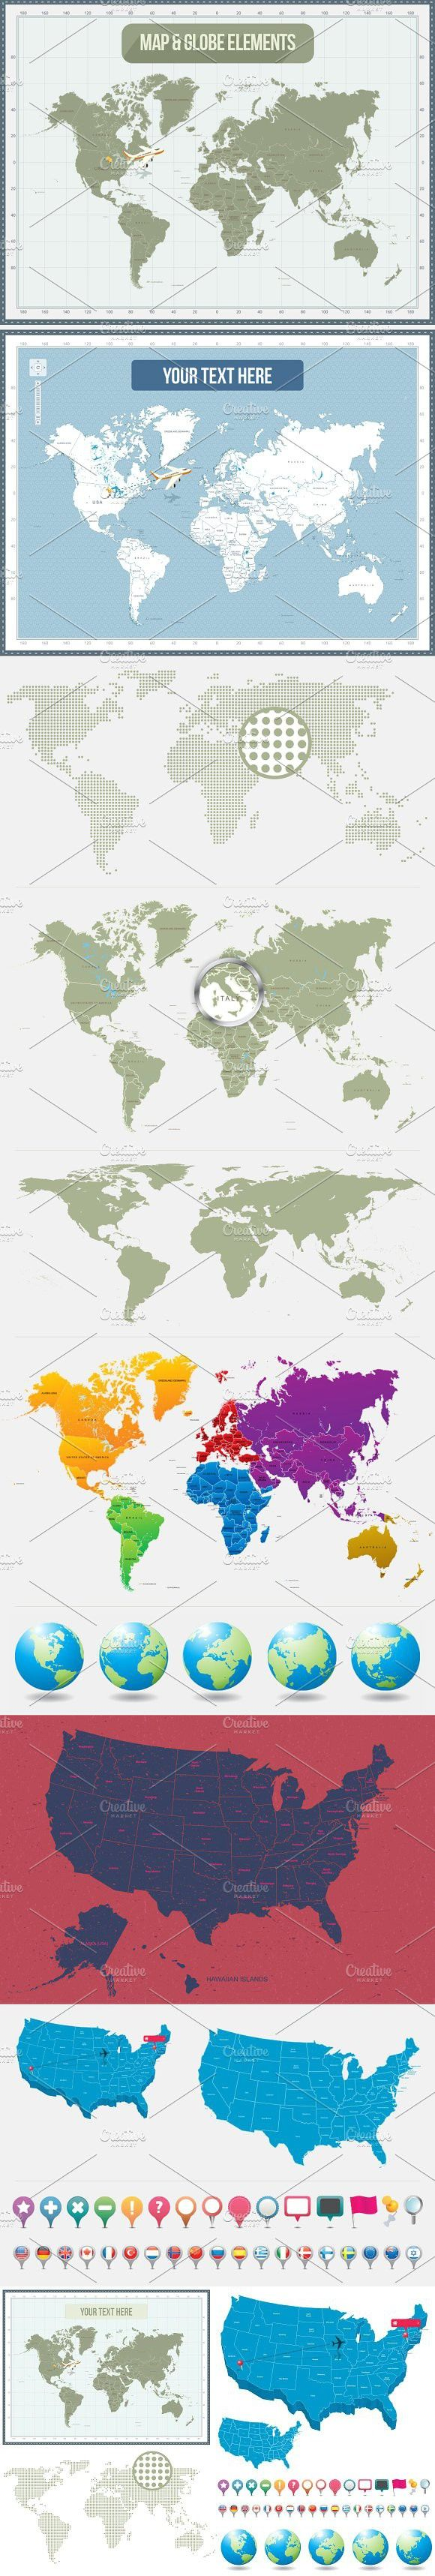 Maps and Globes 29 best Travel images